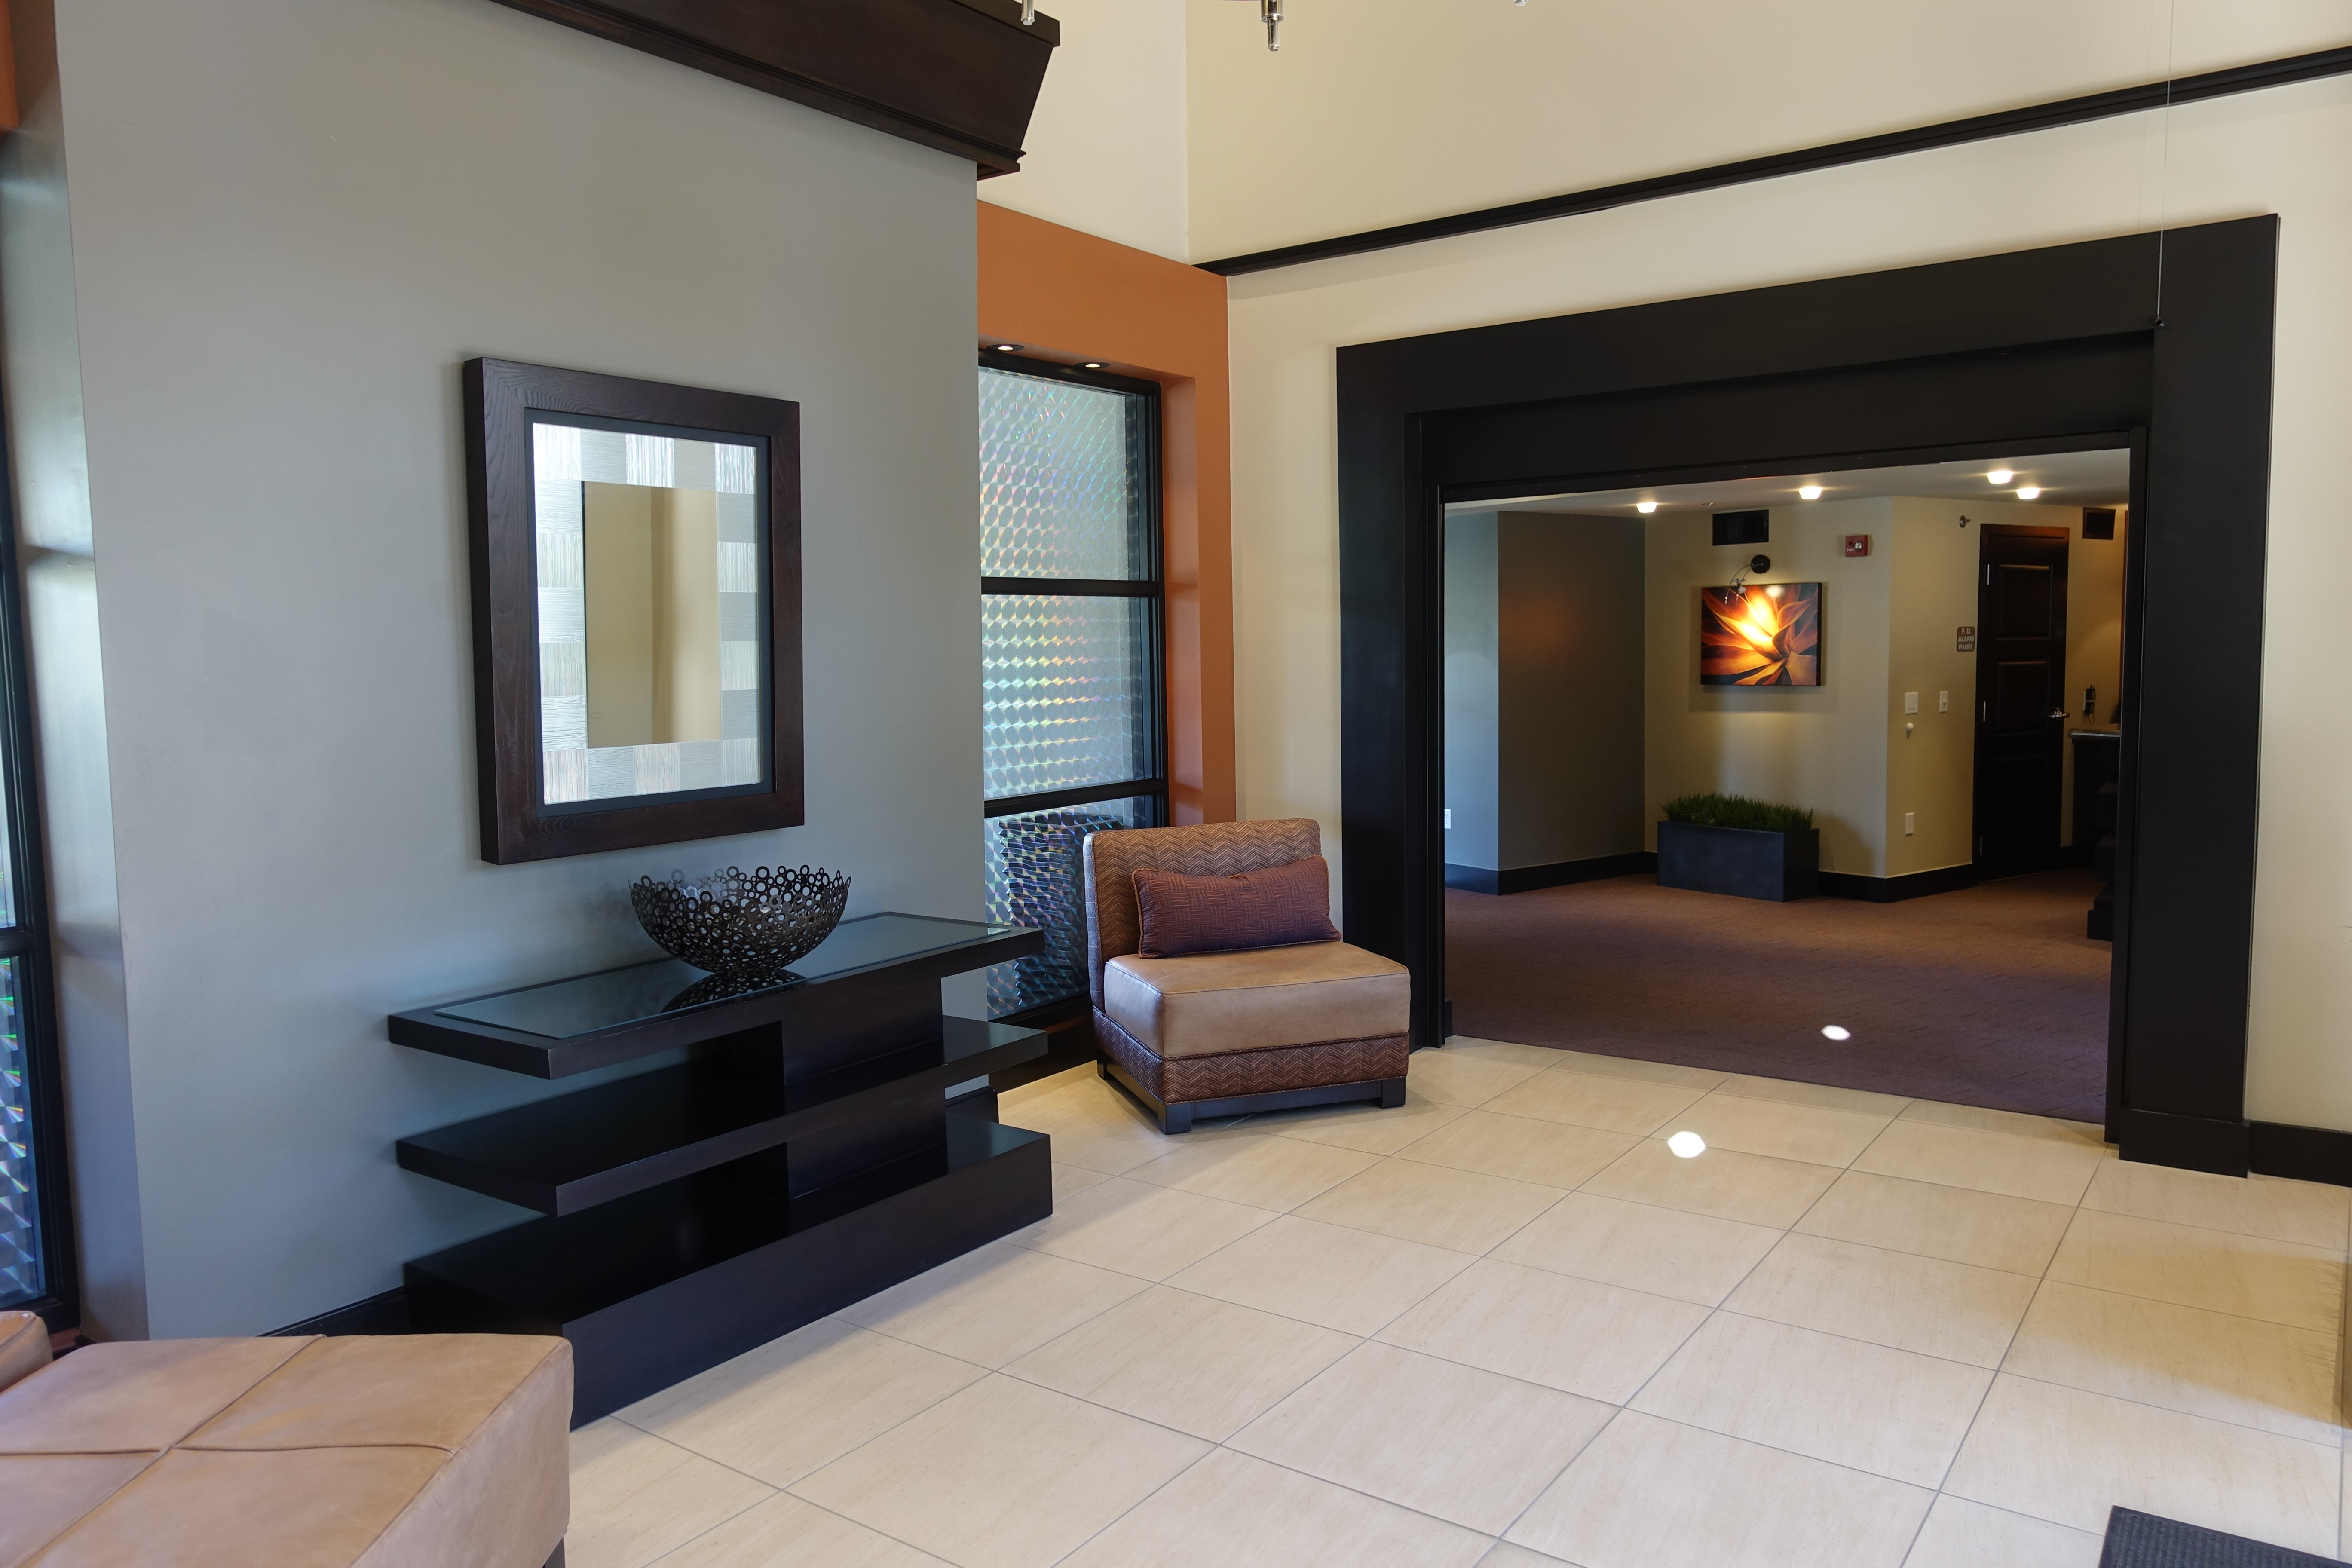 The Landmark condo main foyer and lobby